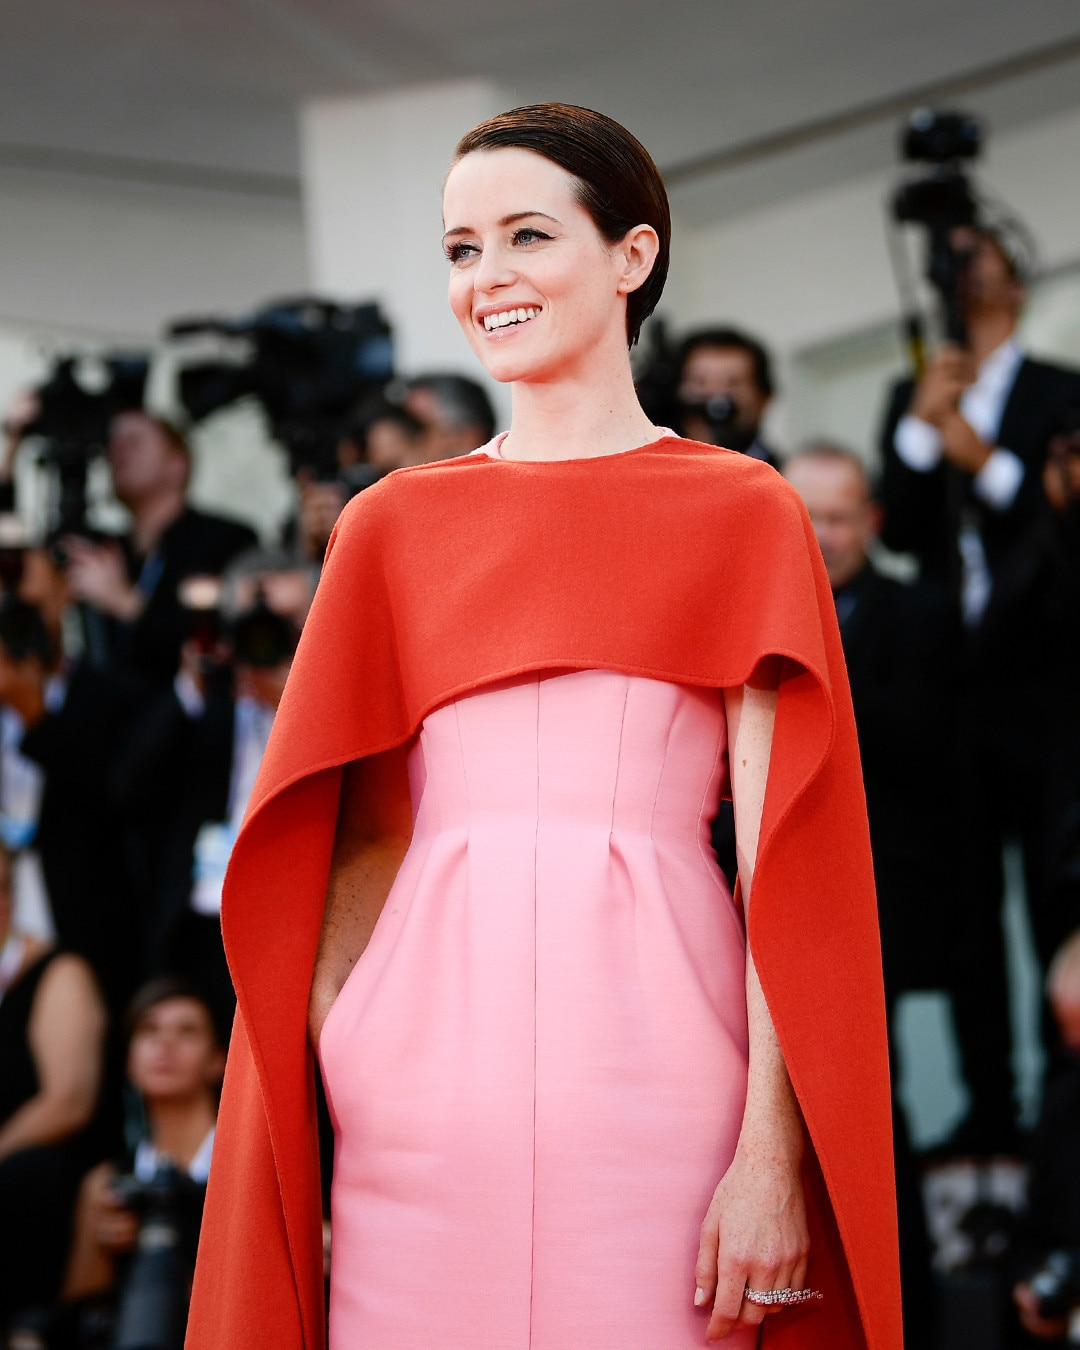 Pics Claire Foy nudes (96 foto and video), Sexy, Paparazzi, Instagram, underwear 2020